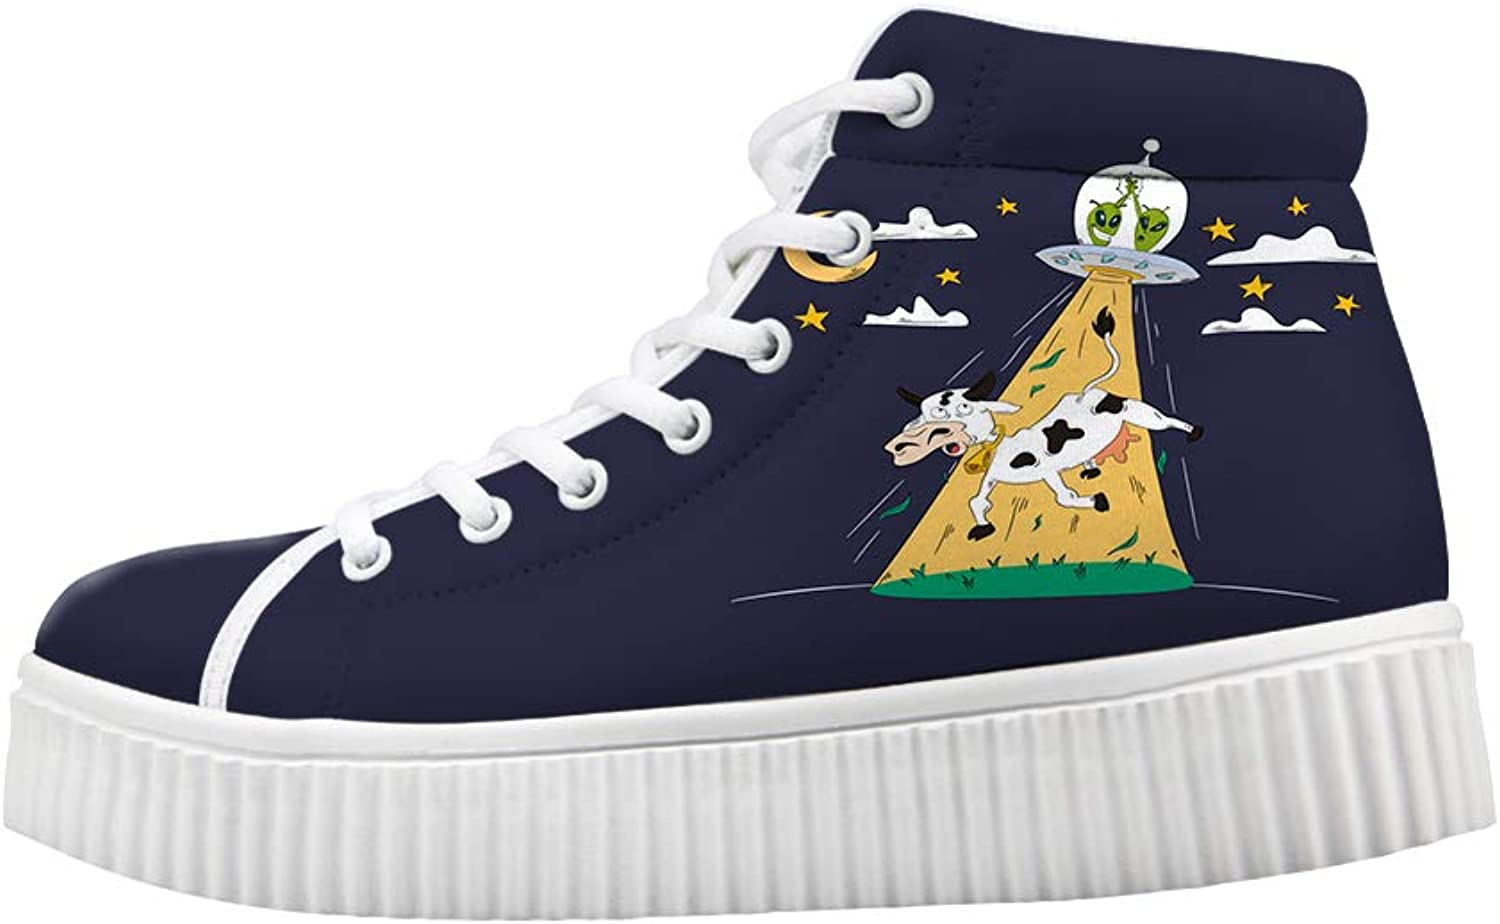 Owaheson Platform Lace up Sneaker Casual Chunky Walking shoes Women High-Five Aliens UFO Kidnapping Cow